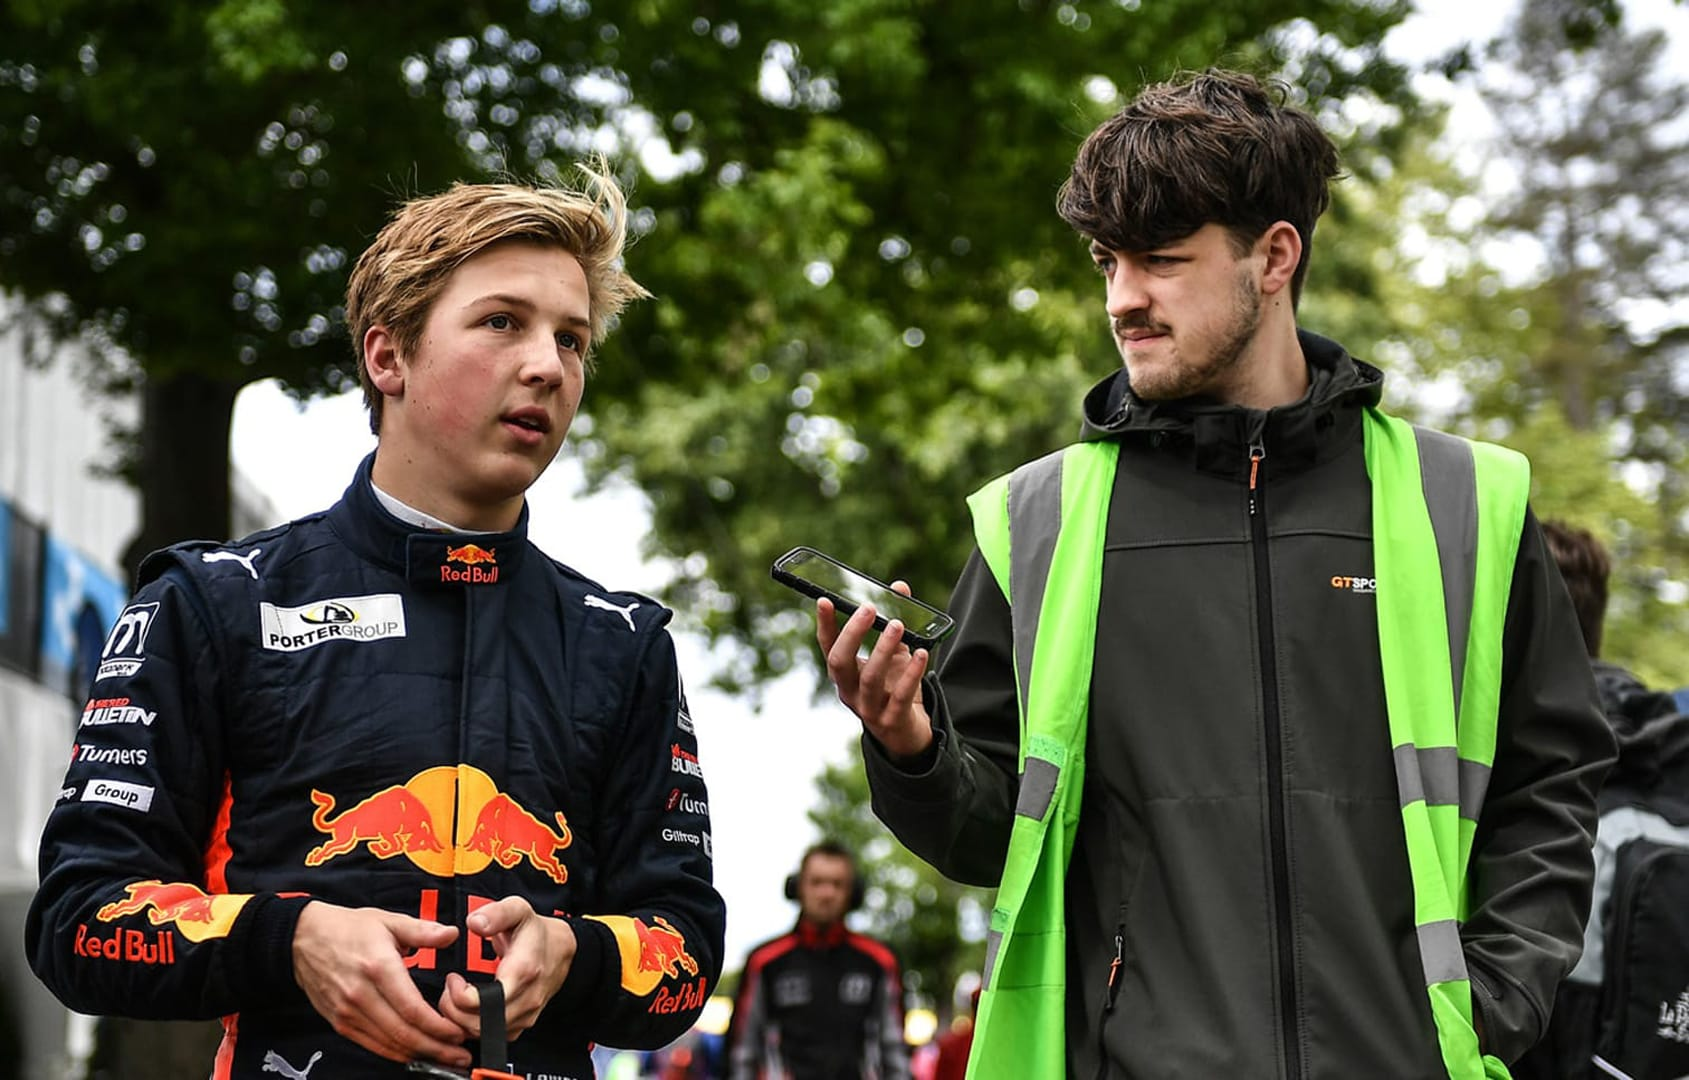 A storming drive to the podium for Lawson